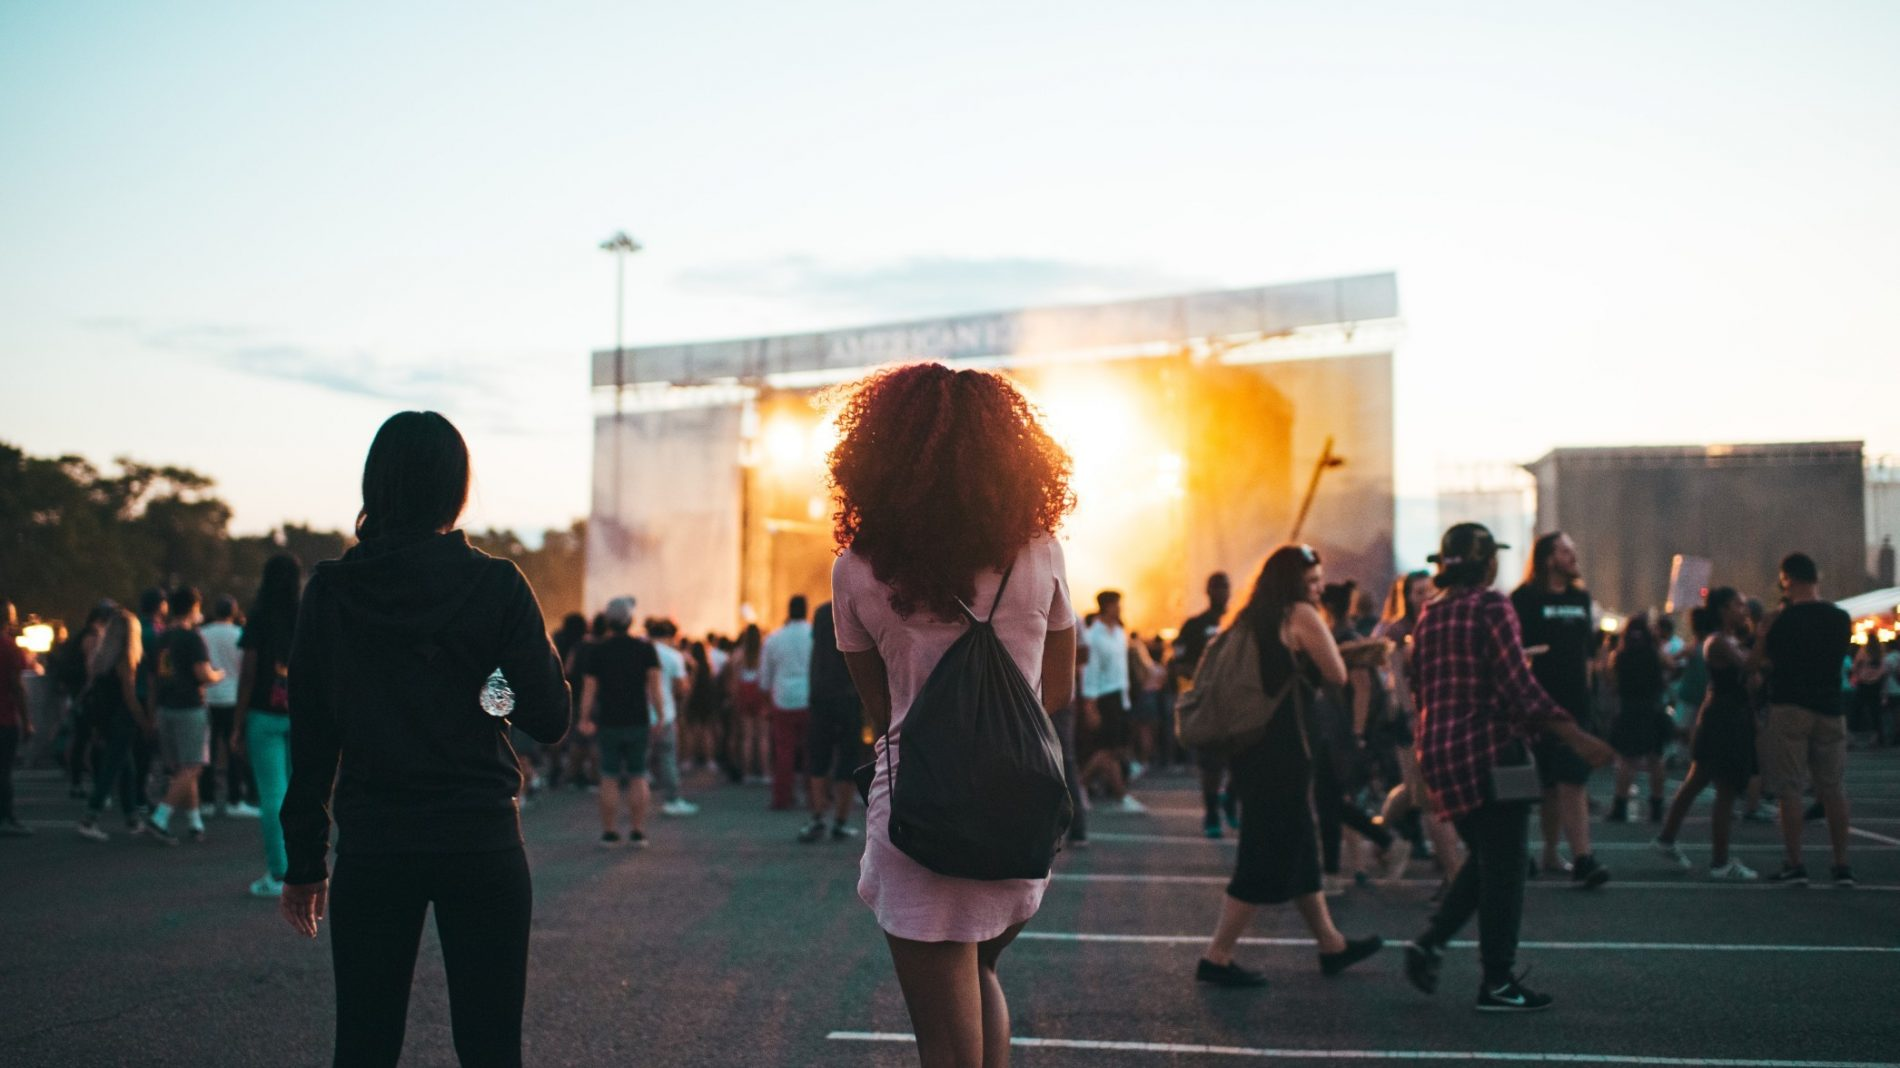 Young people at a music festival